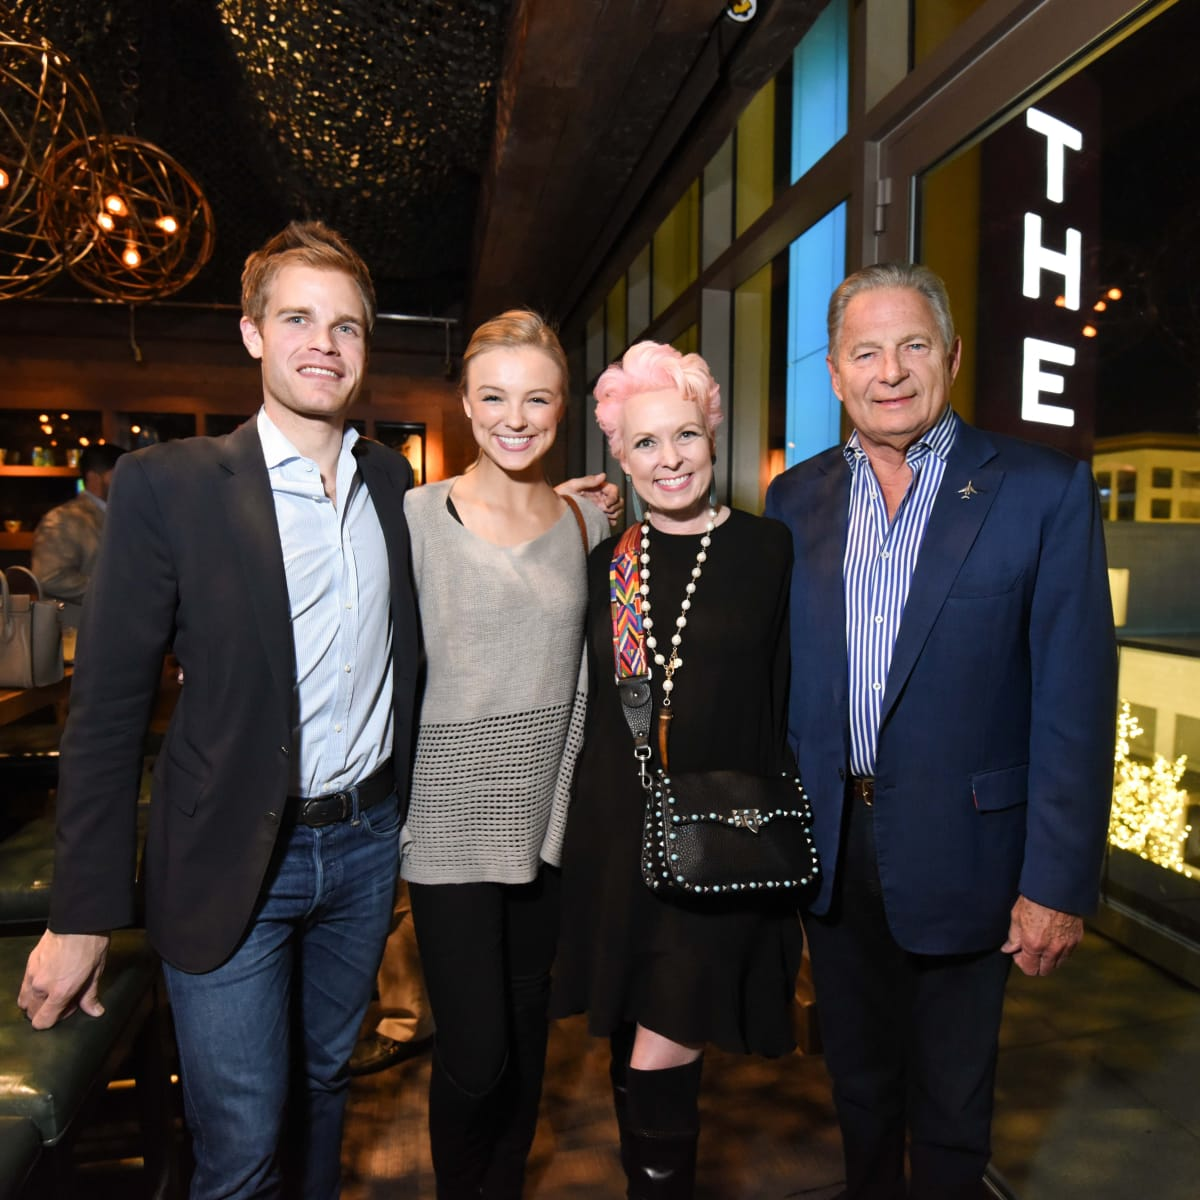 Heart of Fashion at the movies, Feb. 2016 Nick Boulle, Taylor Johnson, Vivian Wise, Charles Ward